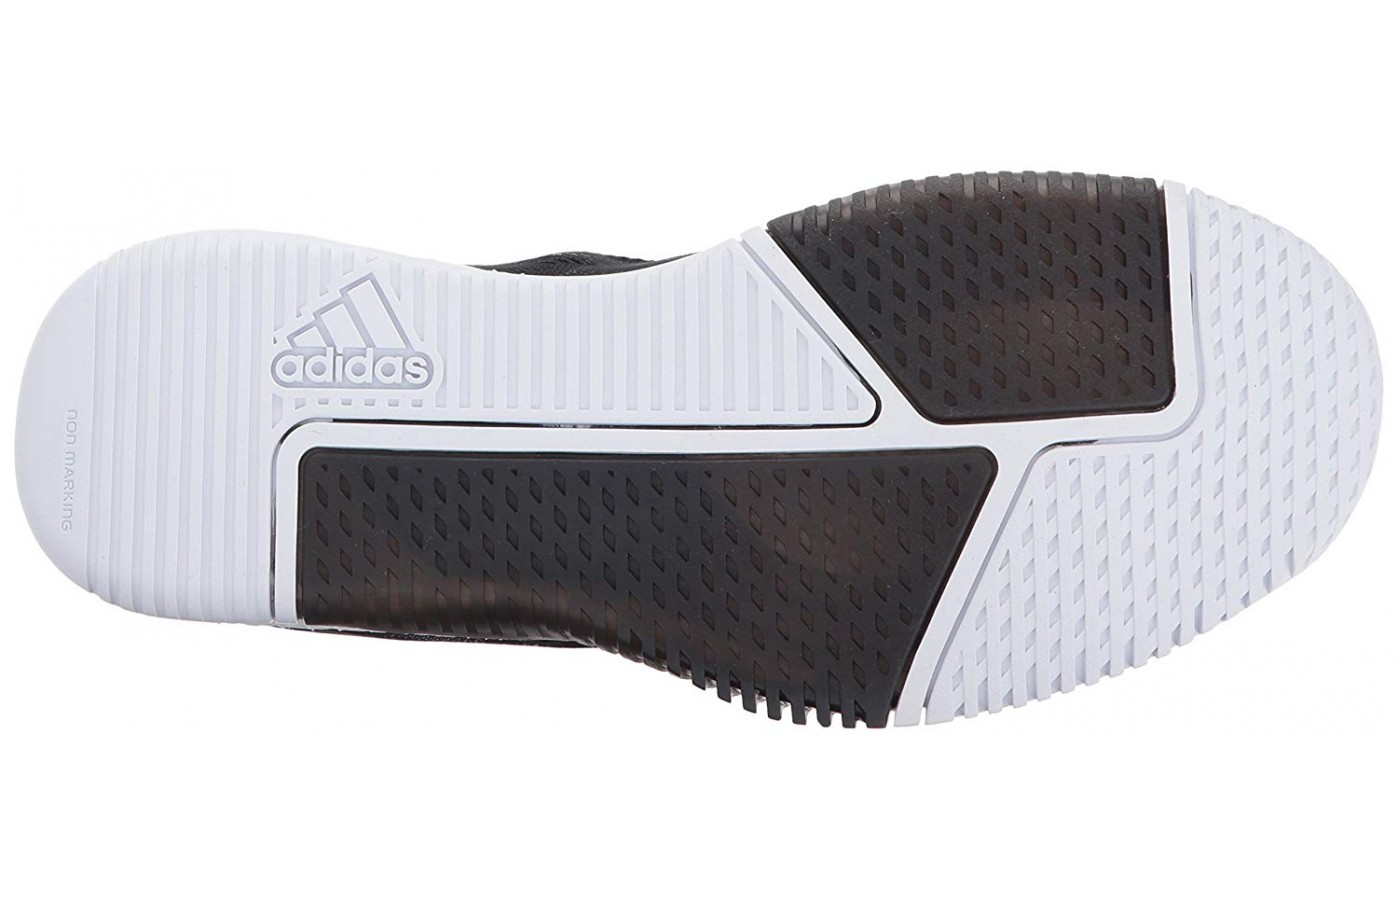 An omnidirectional tread pattern is affixed to the training shoe outsole.